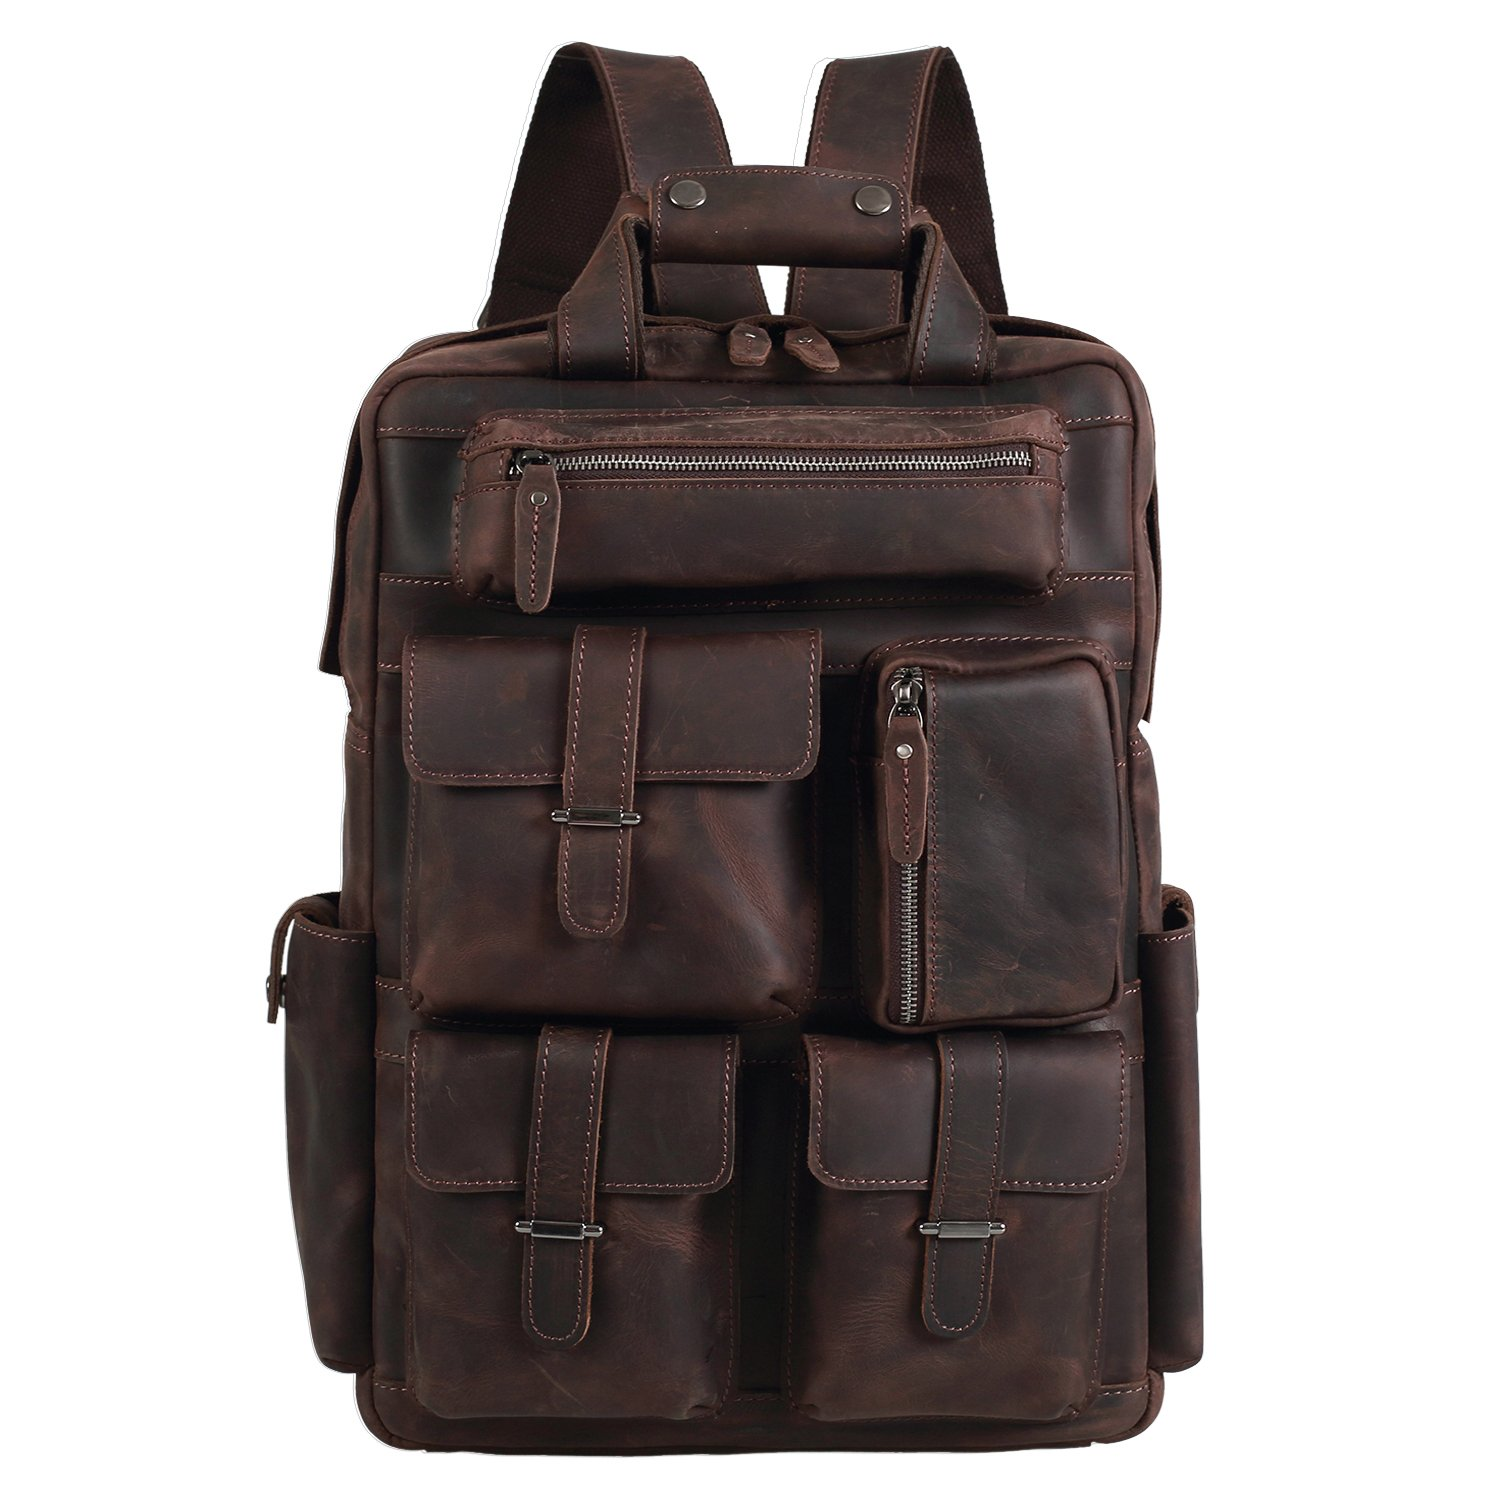 Texbo Cowhide Leather Multi Pockets Laptop Backpack Travel Bag Fit 17 Inch Laptop